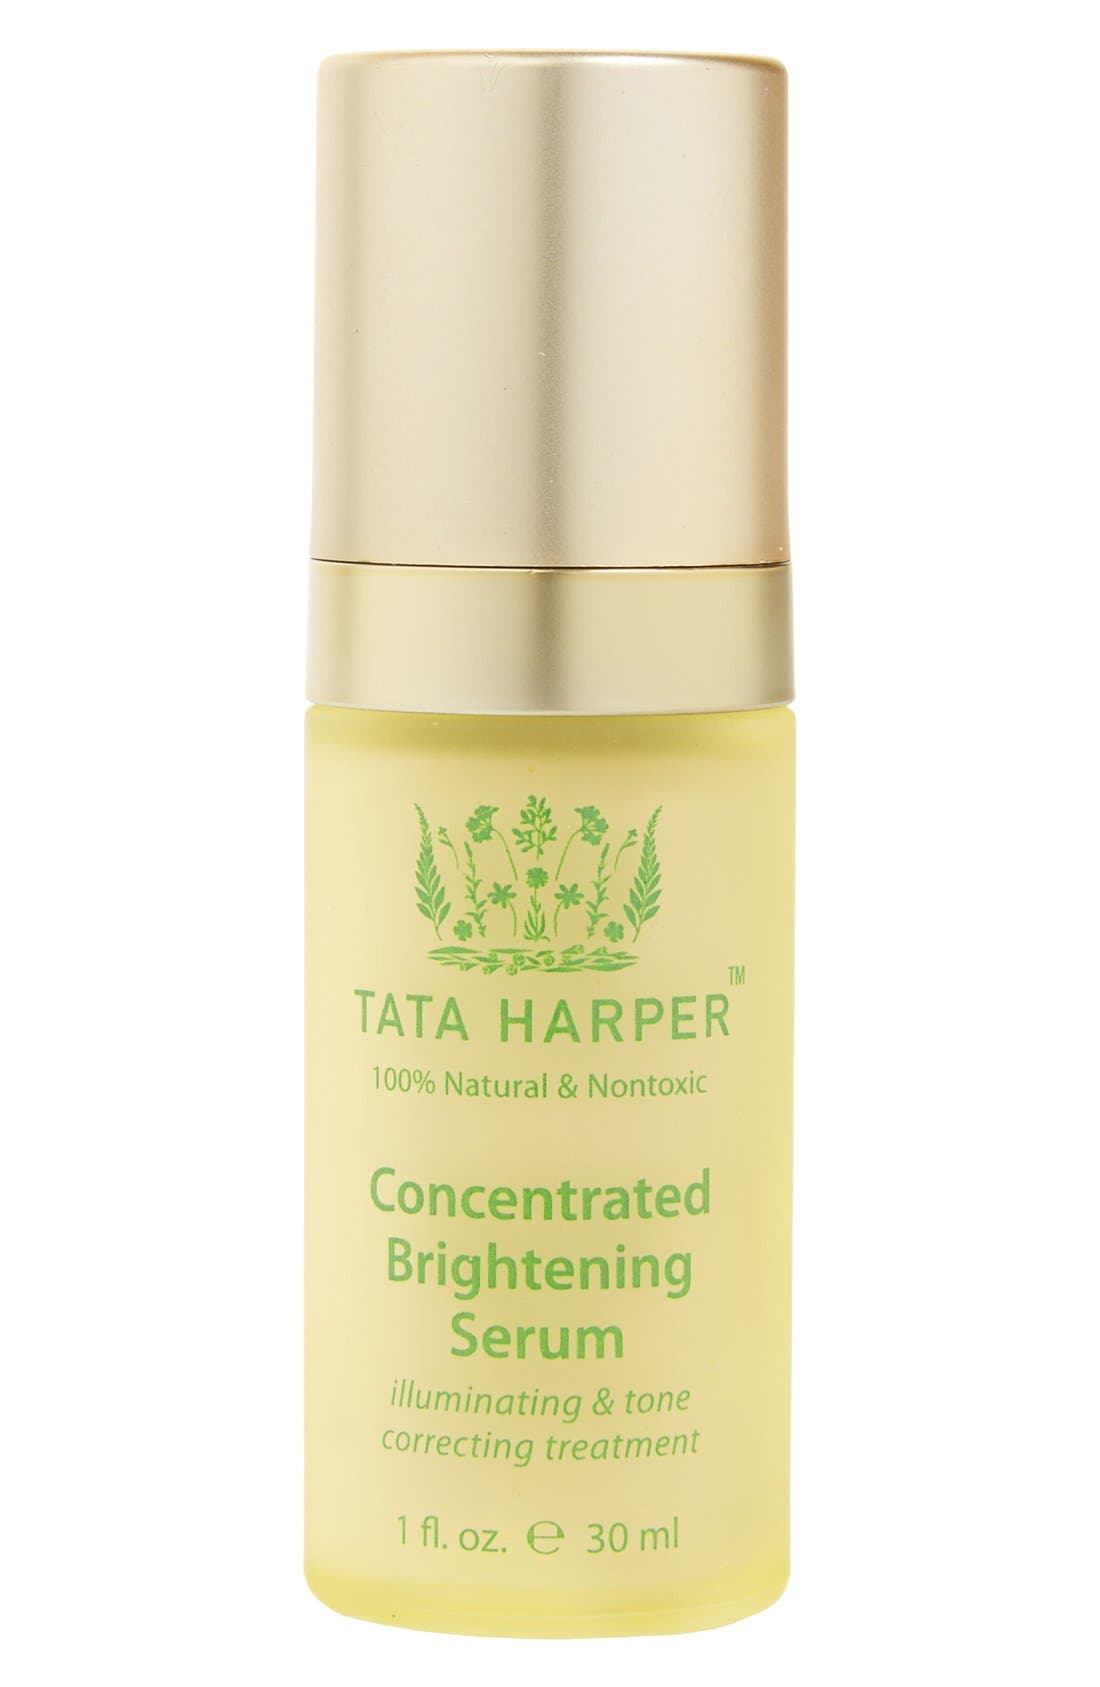 Tata Harper Skincare Concentrated Brightening Serum